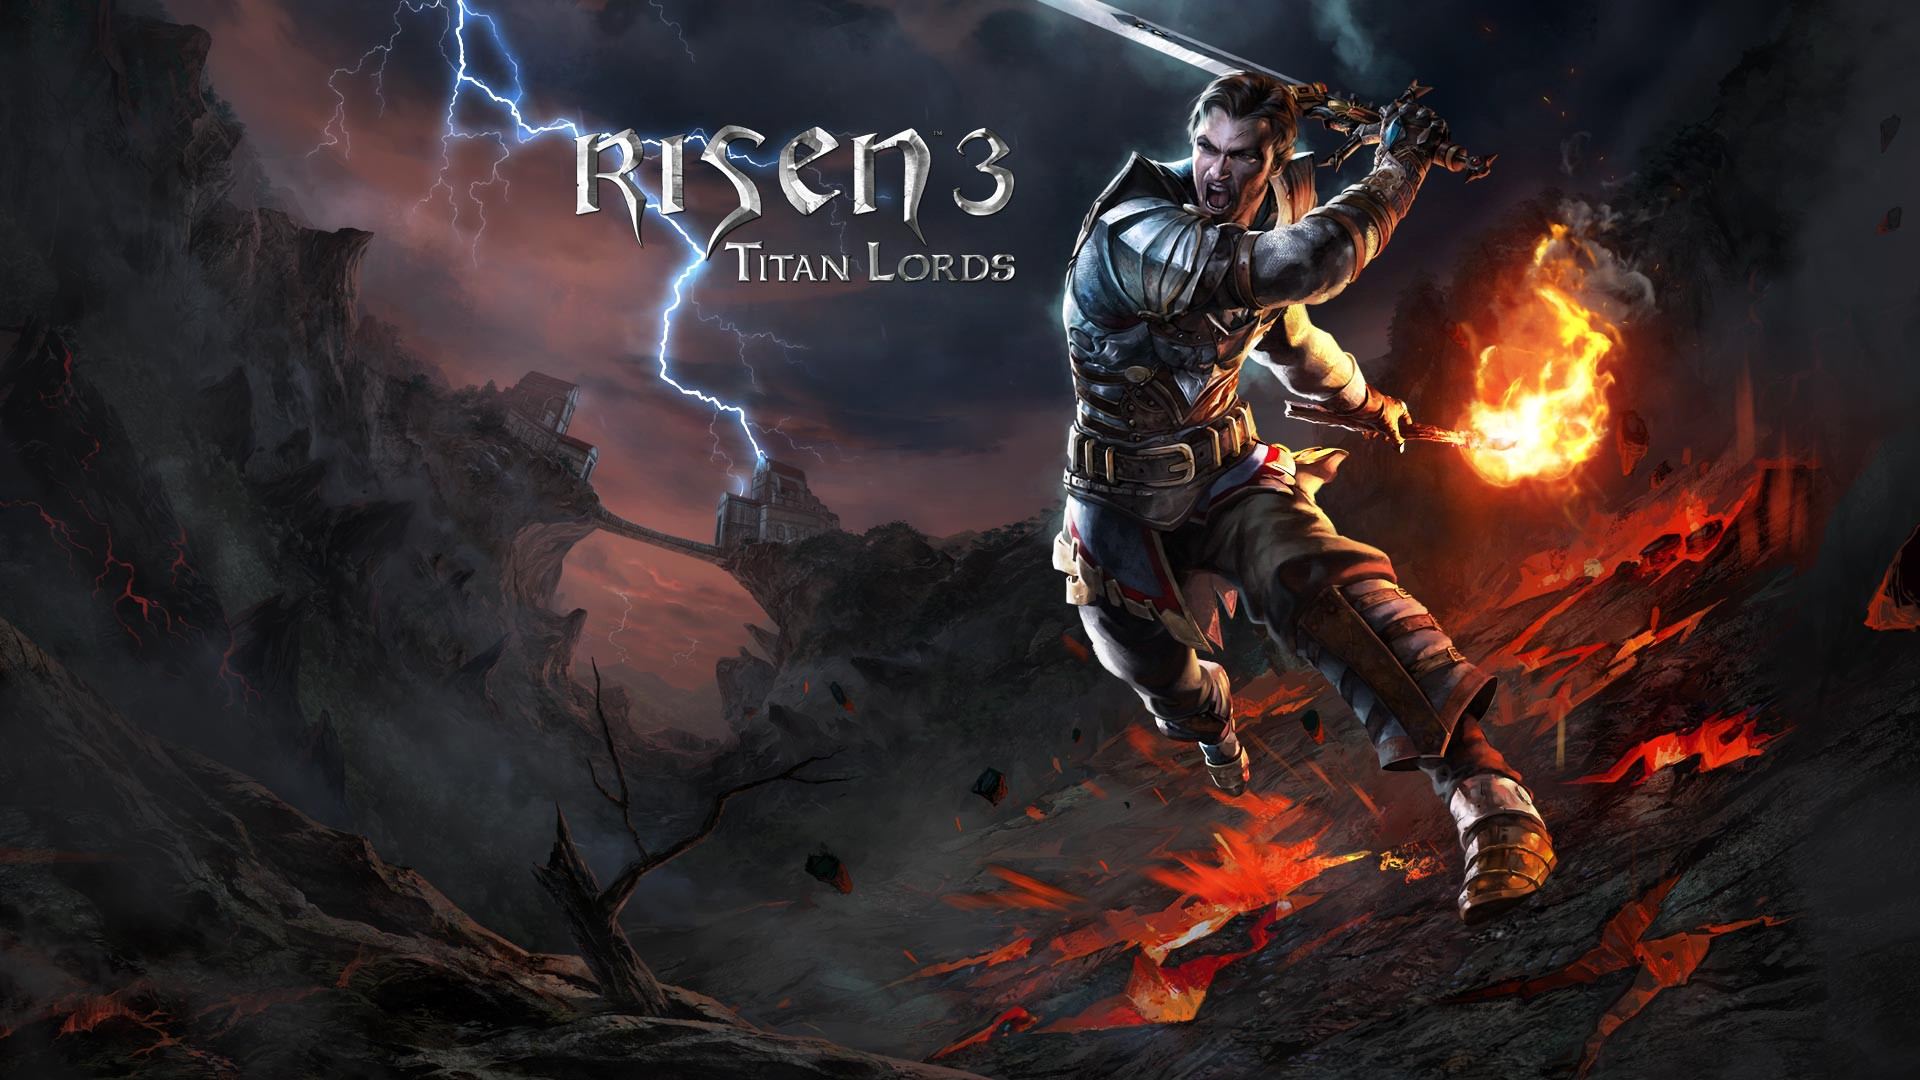 risen-3-titan-lords-logo-background-desktop.jpg (1920×1080)